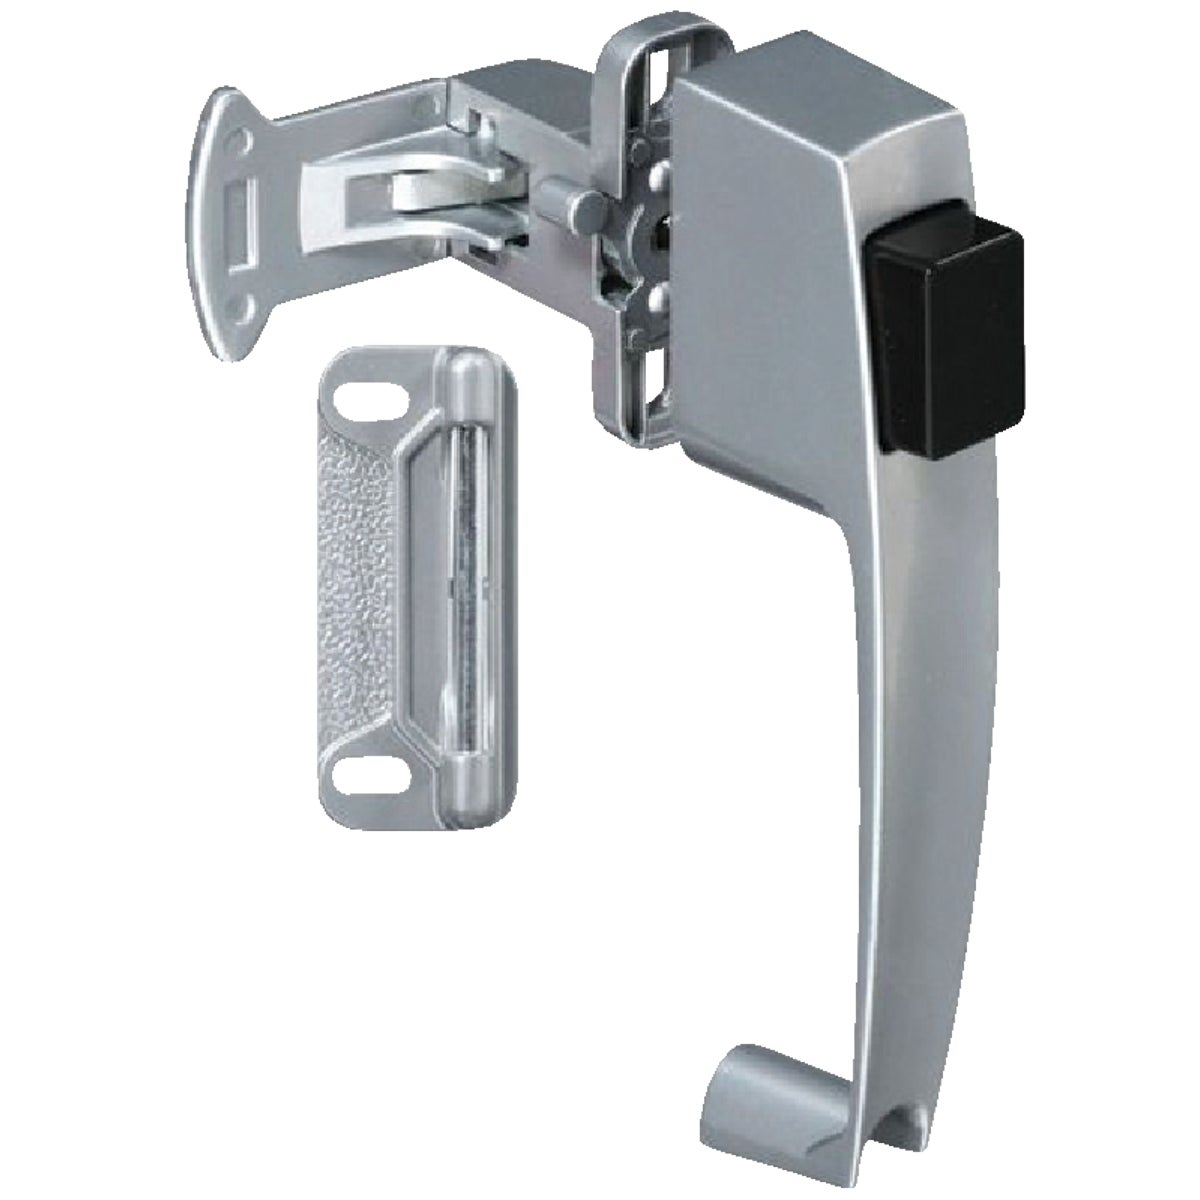 PUSH-BUTTON LATCH - V398 by Hampton Prod Intl